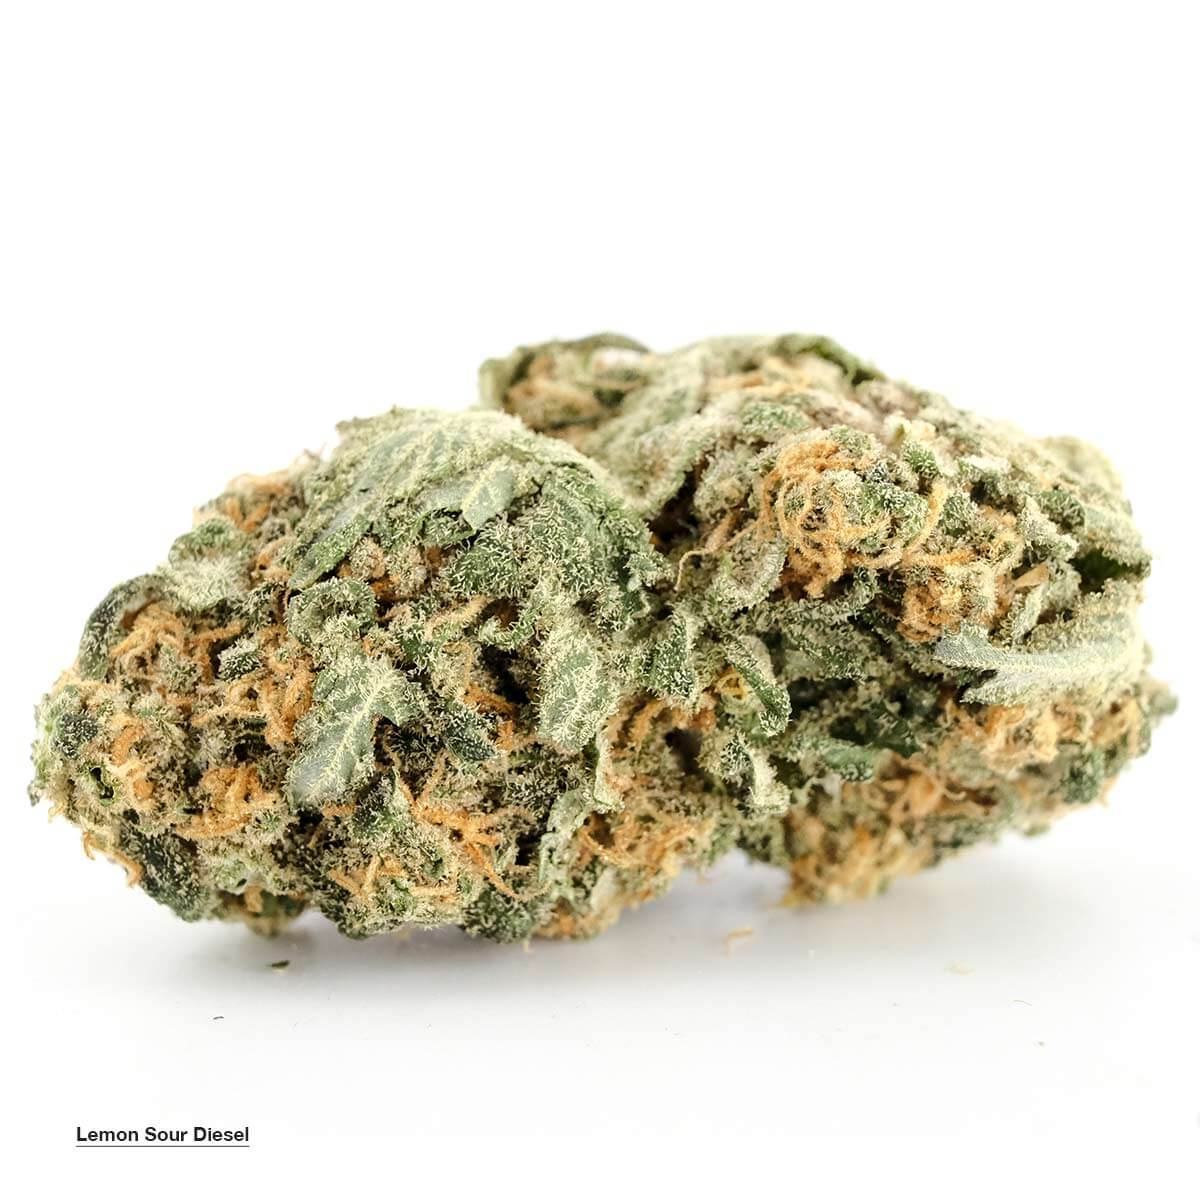 Lemon Sour Diesel (AAAA) by Buy My Weed Online - Image © 2018 Buy My Weed Online. All Rights Reserved.